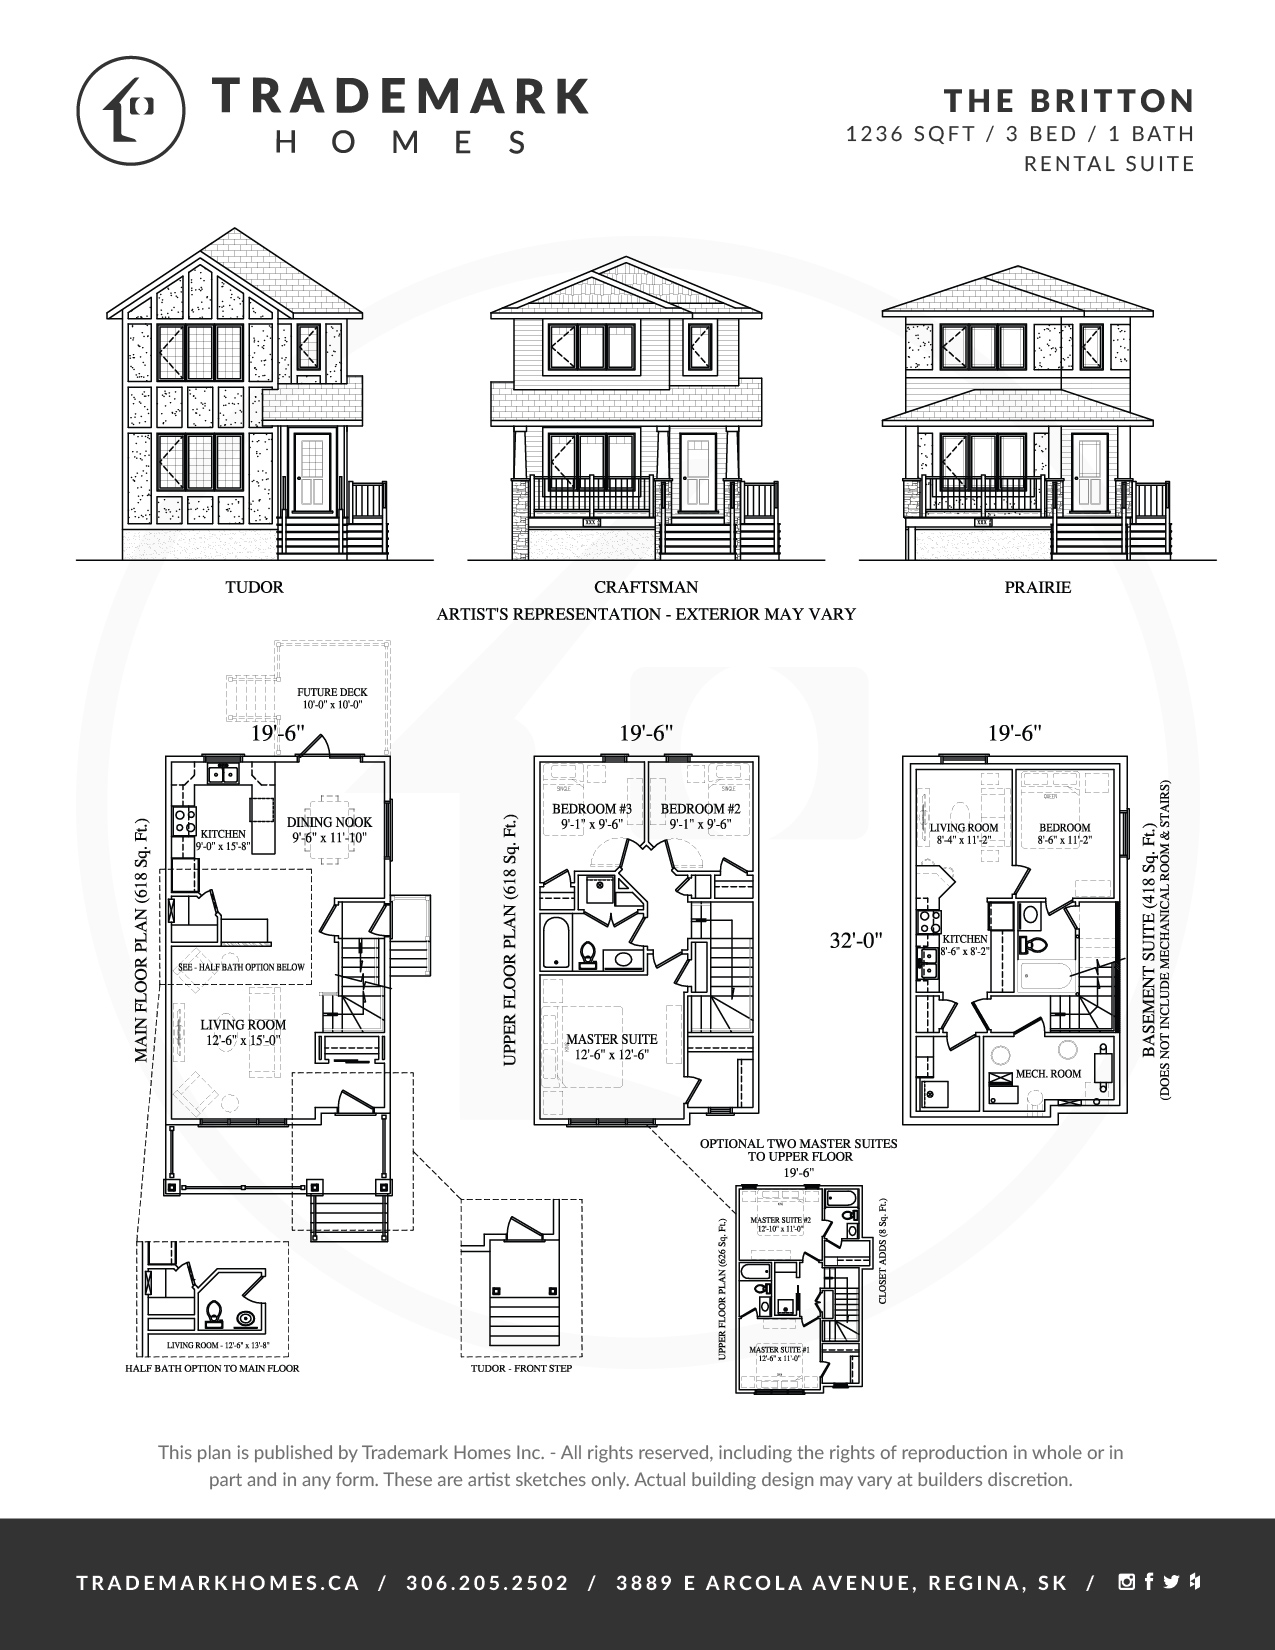 Trademark Homes The Britton Lane Lot